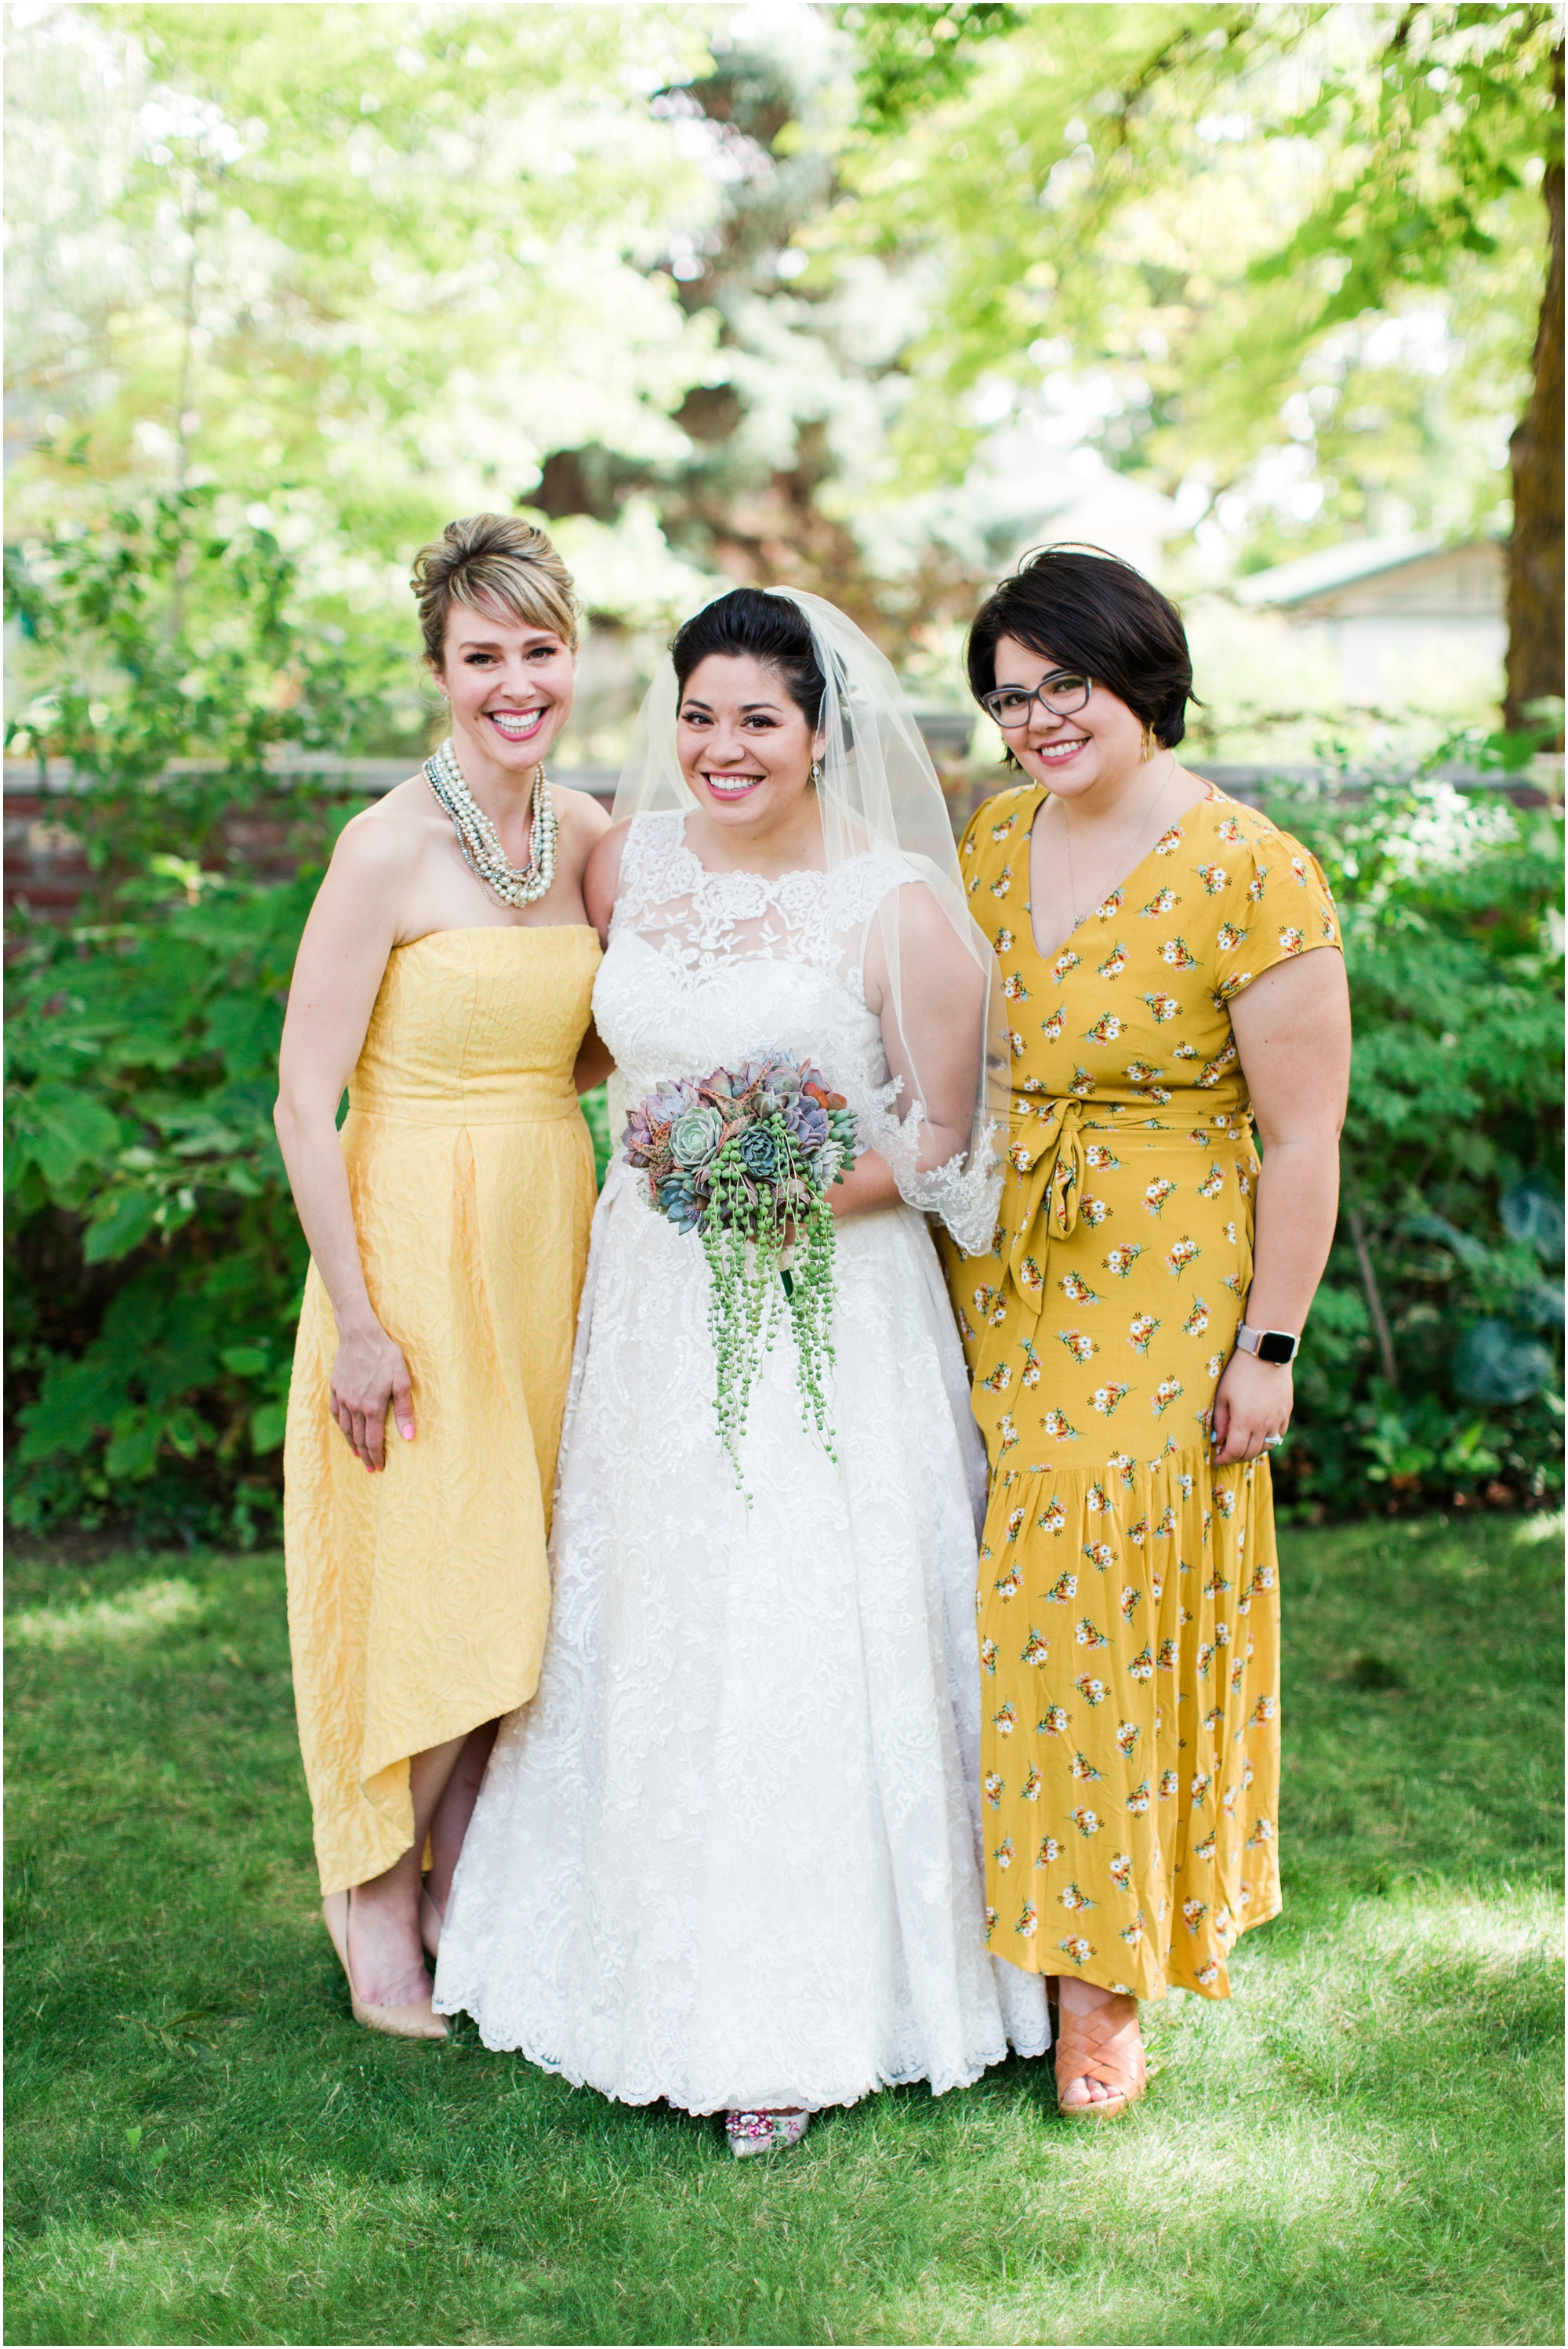 Garden wedding in Ellensburg, WA. Photos by Briana Calderon Photography based in the greater Seattle-Tacoma Area._1334.jpg